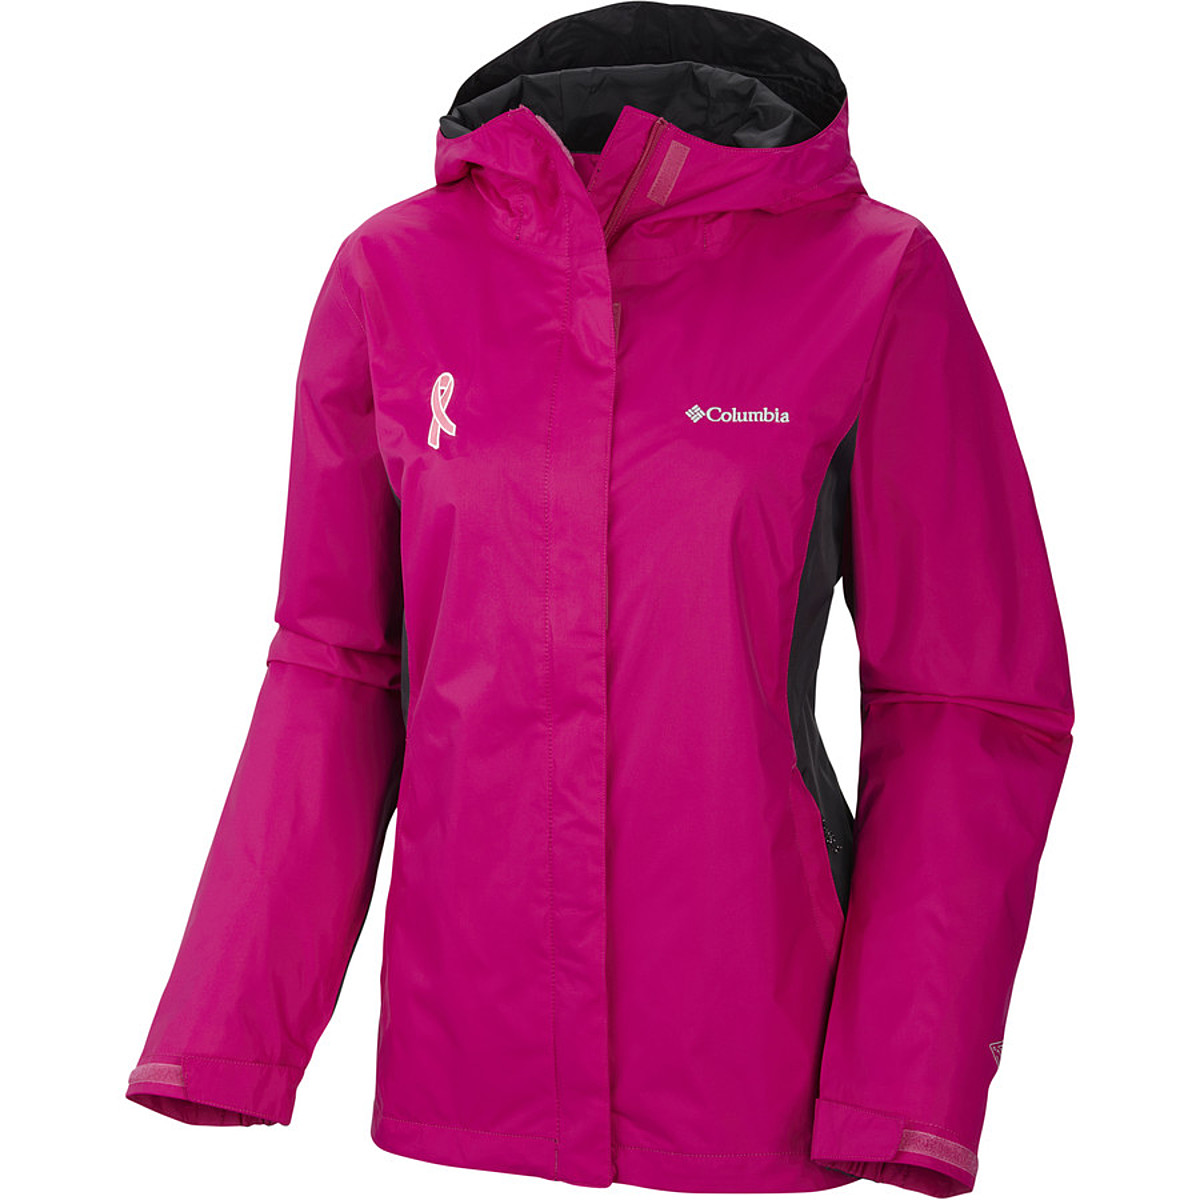 Columbia Tested Tough in Pink Jacket